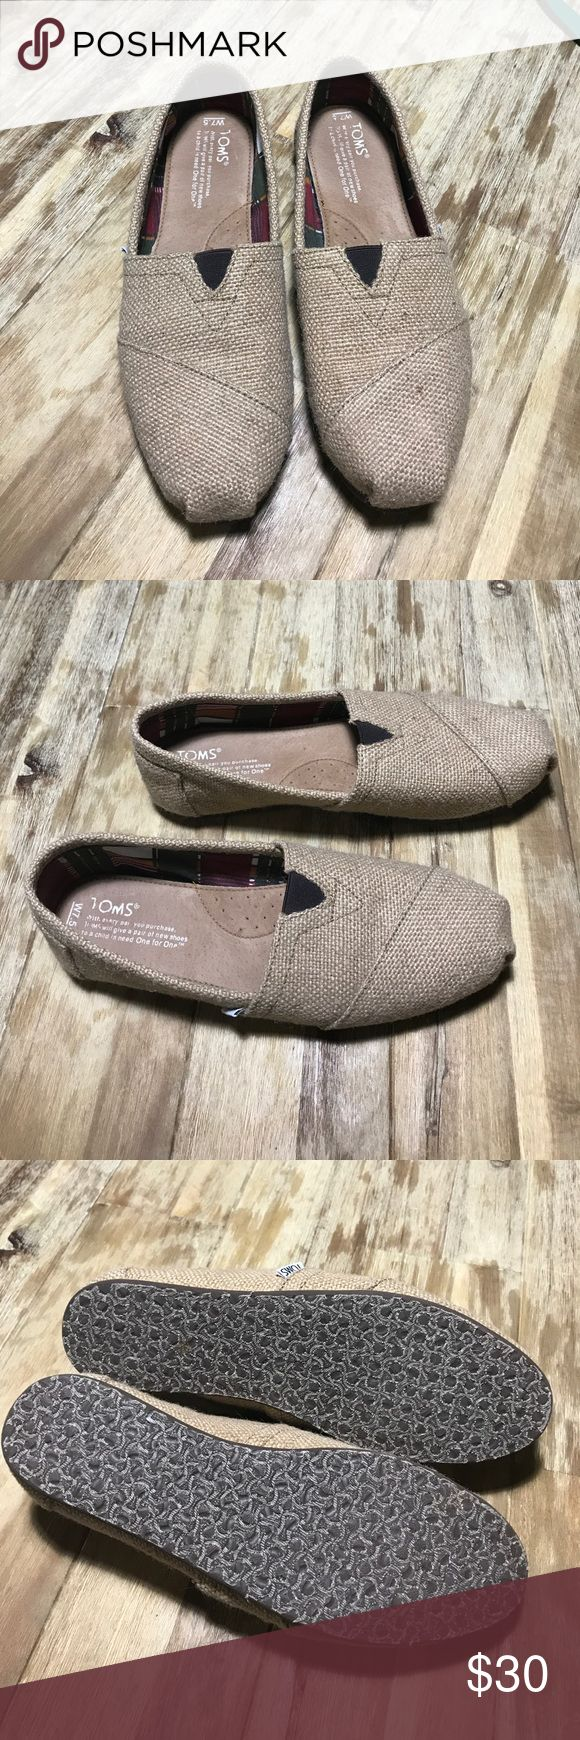 Size 7.5 woman's burlap Toms! Cute burlap Toms! Worn a couple of times. In great condition. Toms Shoes Flats & Loafers